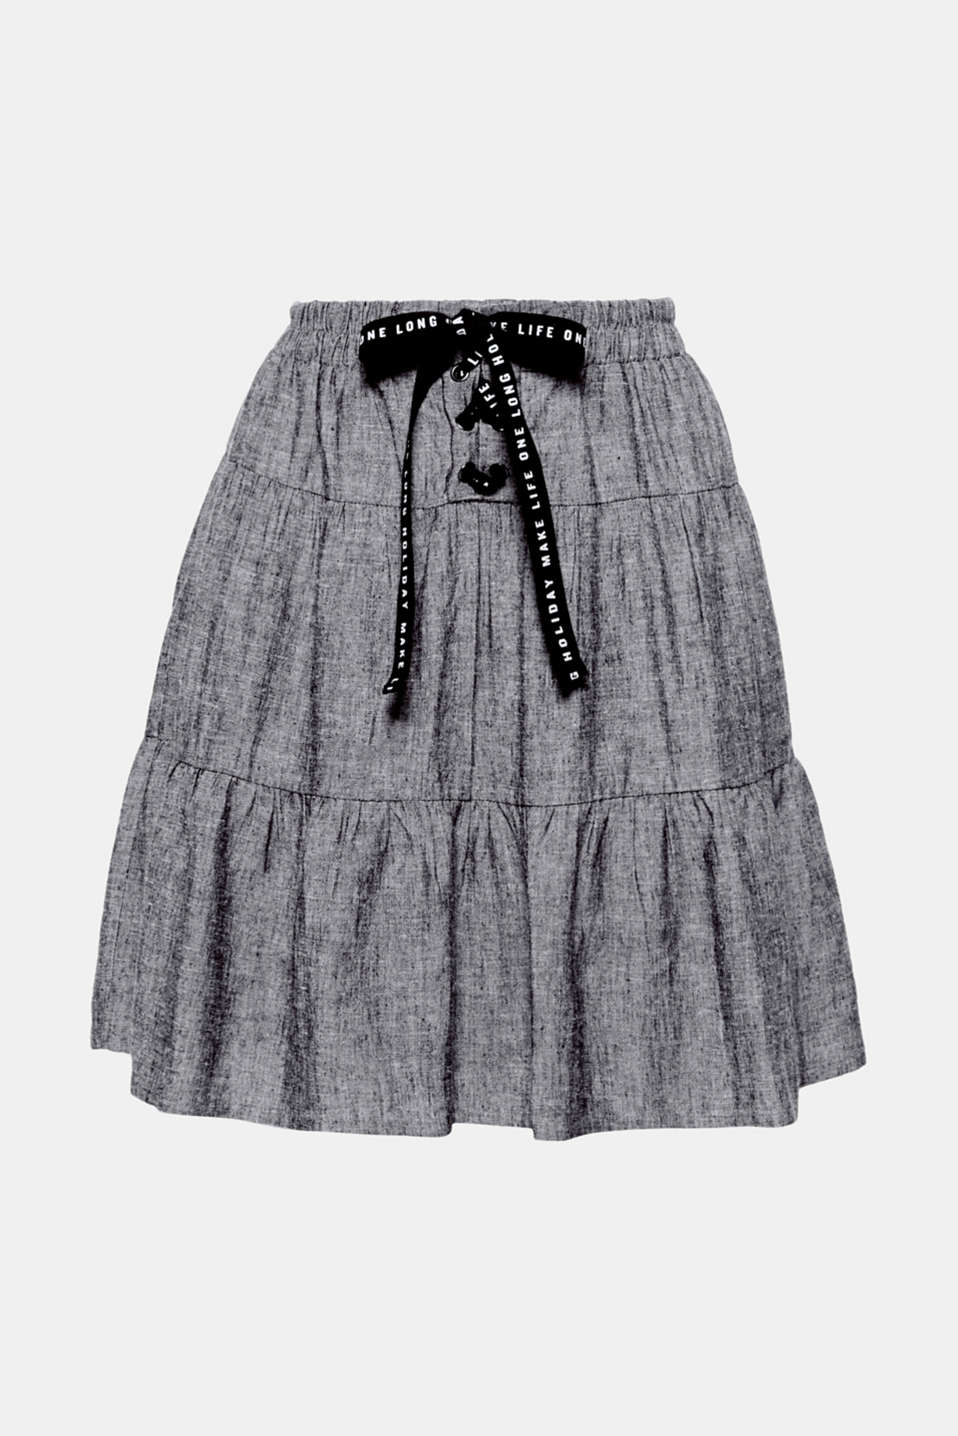 This short tiered skirt with cool linen and decorative lacing on the front of the waistband is the ultimate piece for hot days!